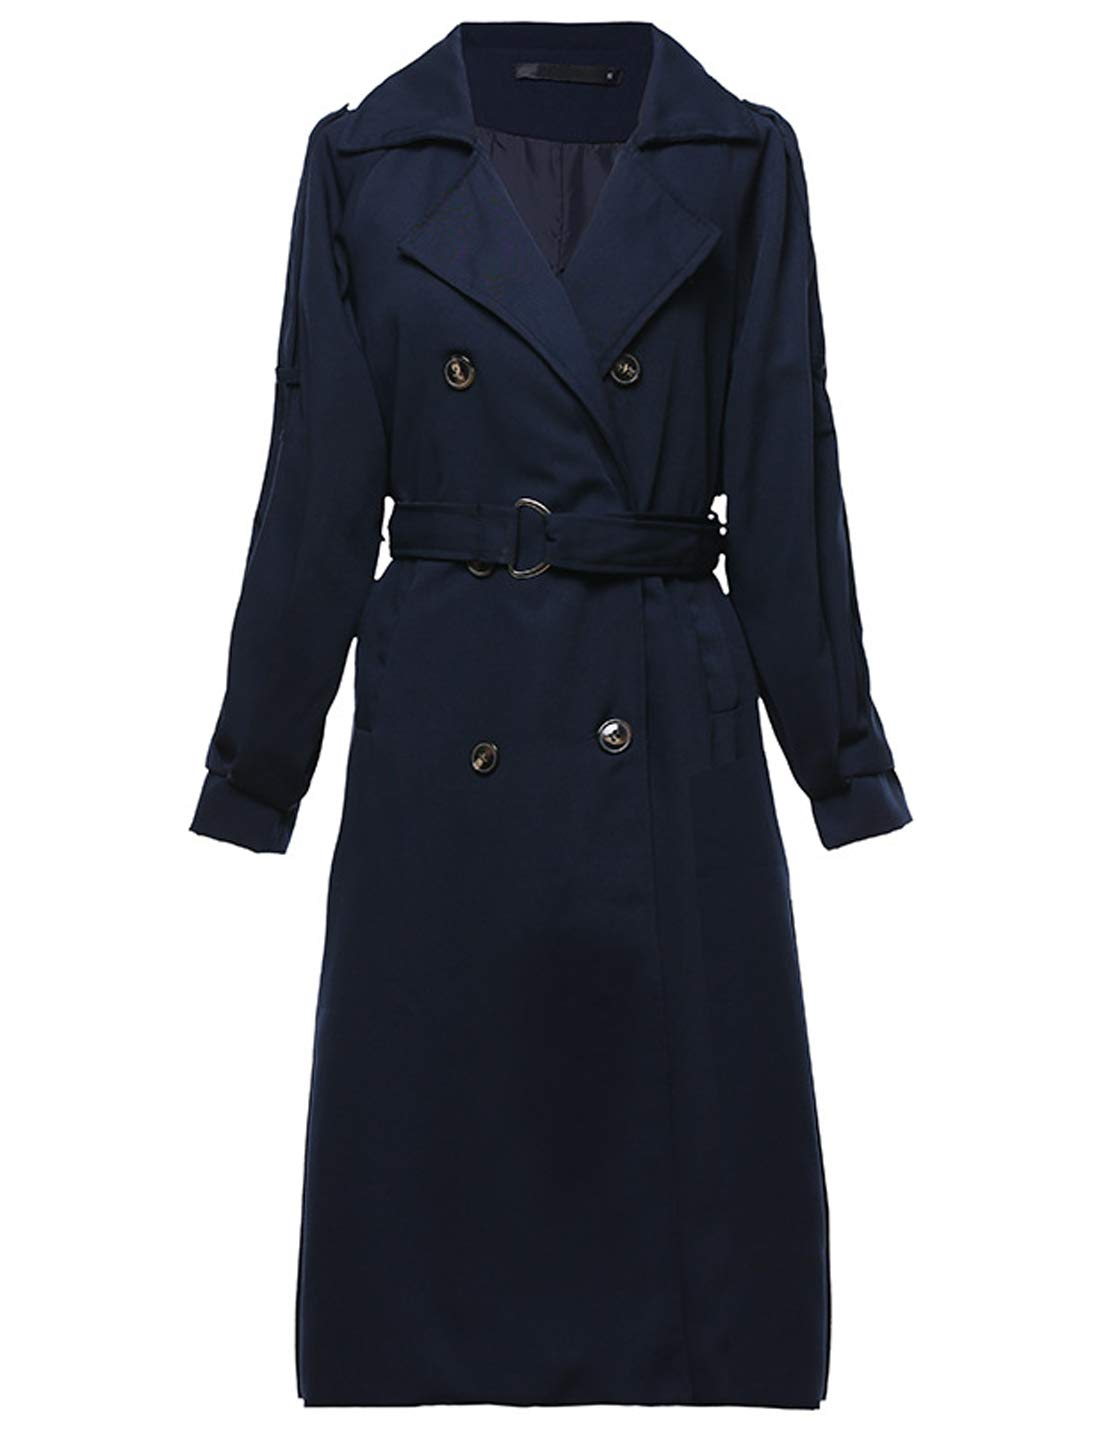 Yeokou Women's Causal Double Breasted Full Length Long Trench Coat with Belt (Medium, Navy Blue) by Yeokou